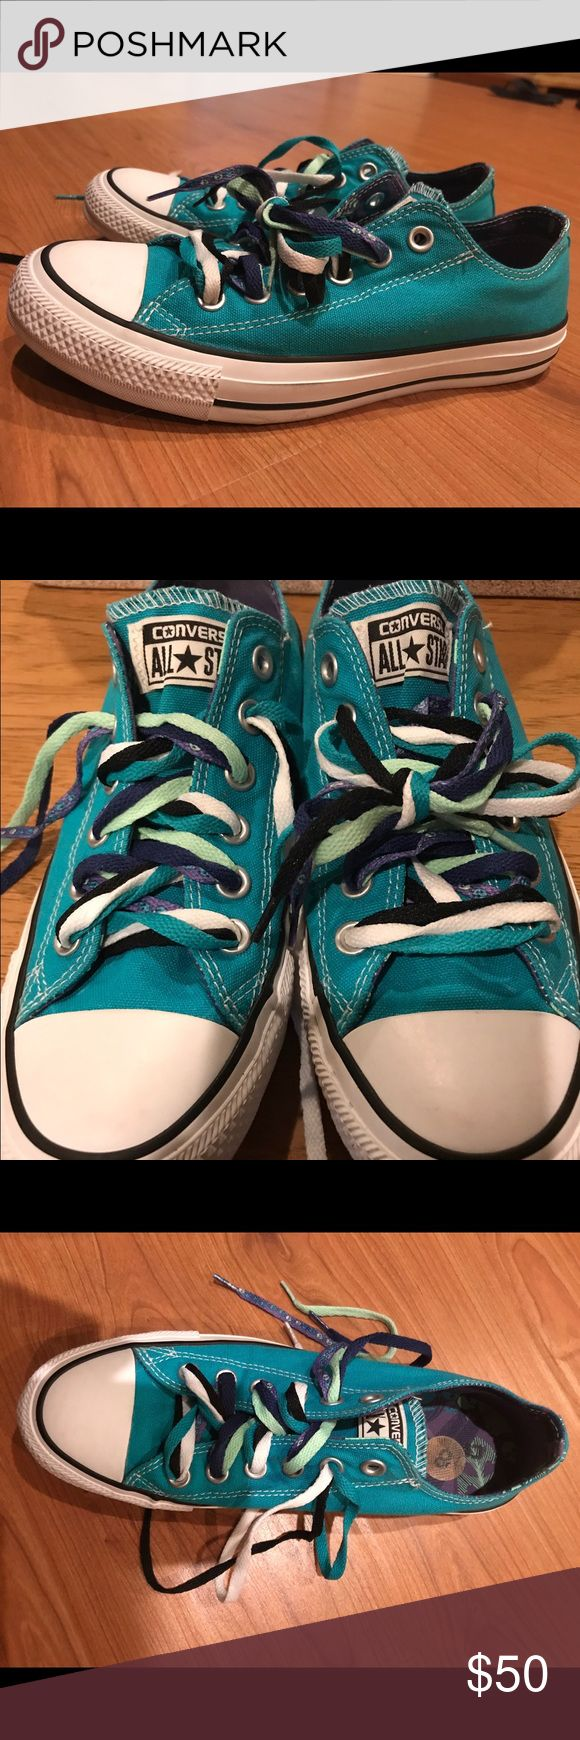 Turquoise Converse with multiple colorful laces ❤️❤️60% OFF❤️❤️A nice blue color with varying laces👟! foldable tongue. No scratches or marks. Perfect blend of Size and Comfort. Just in time for Back to School! 100% Authentic - feel free to ask questions! Converse Shoes Sneakers